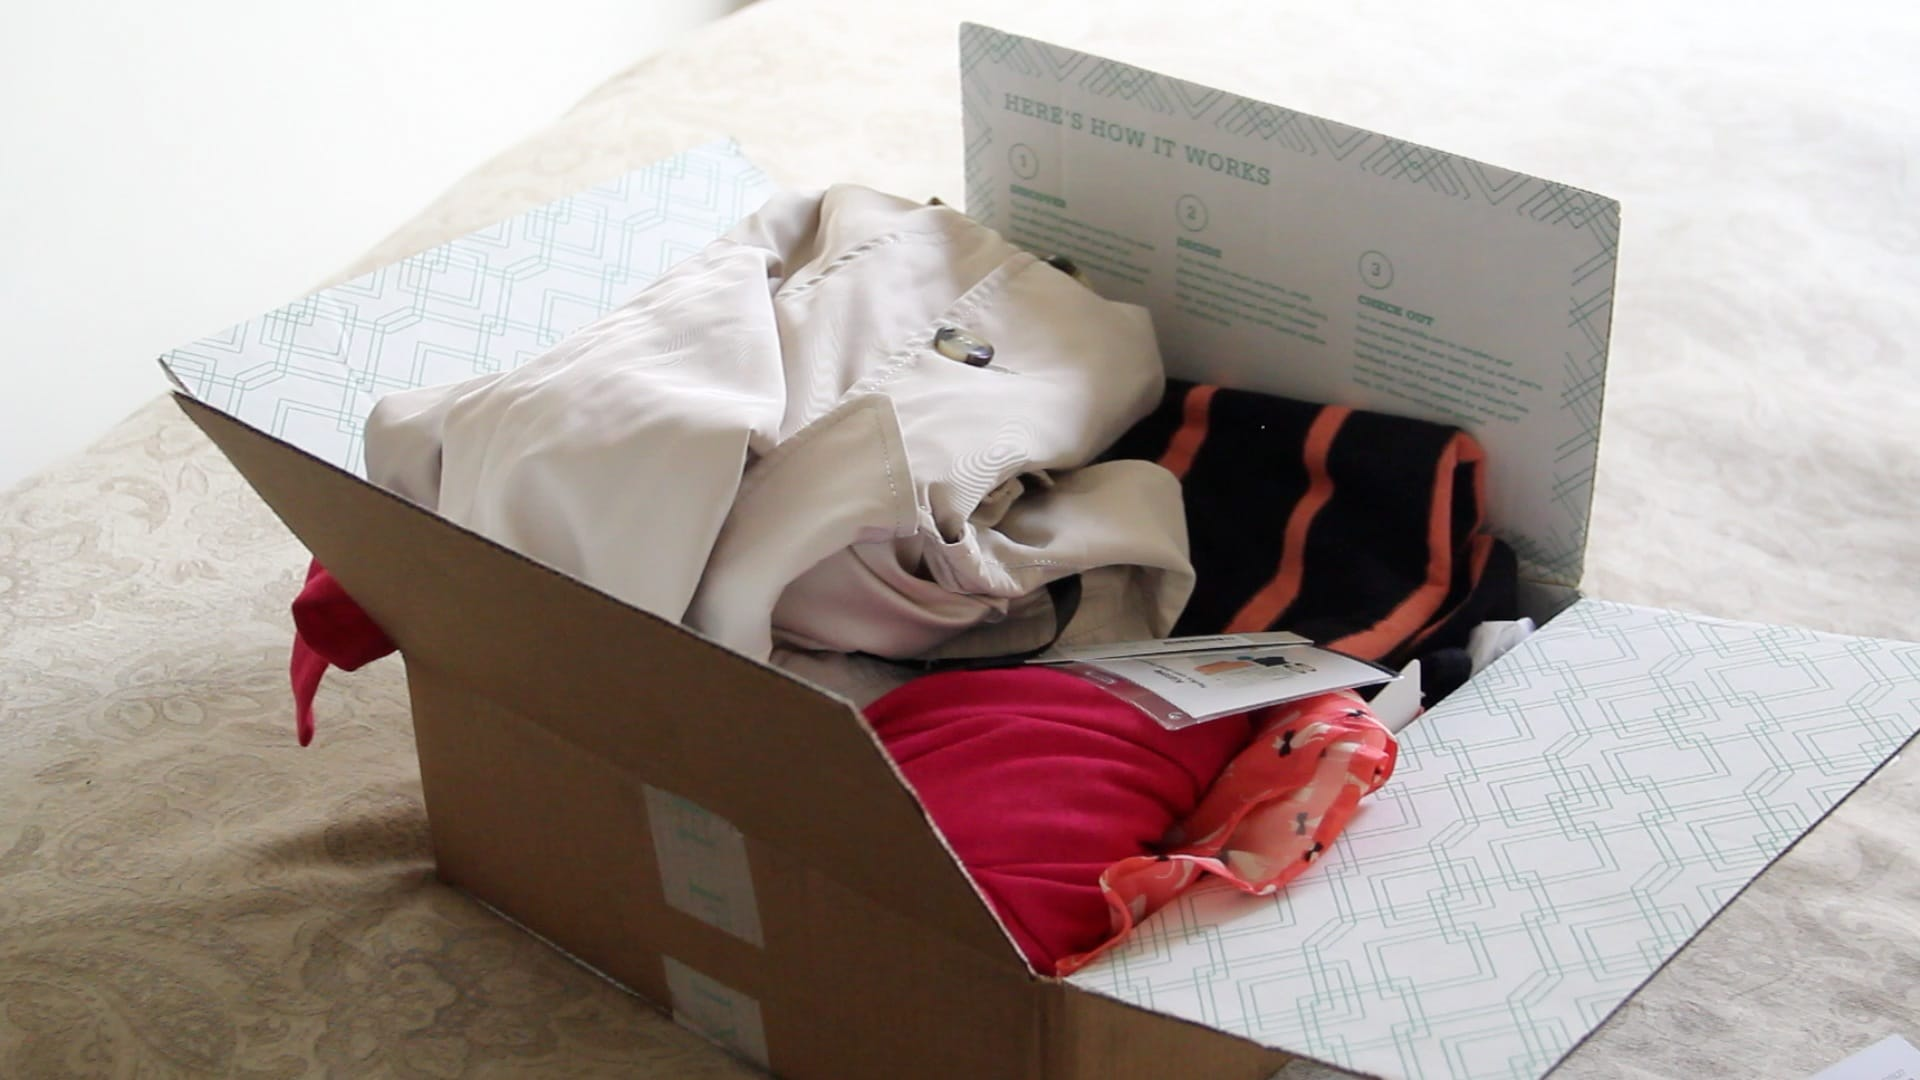 Clothes in a Box